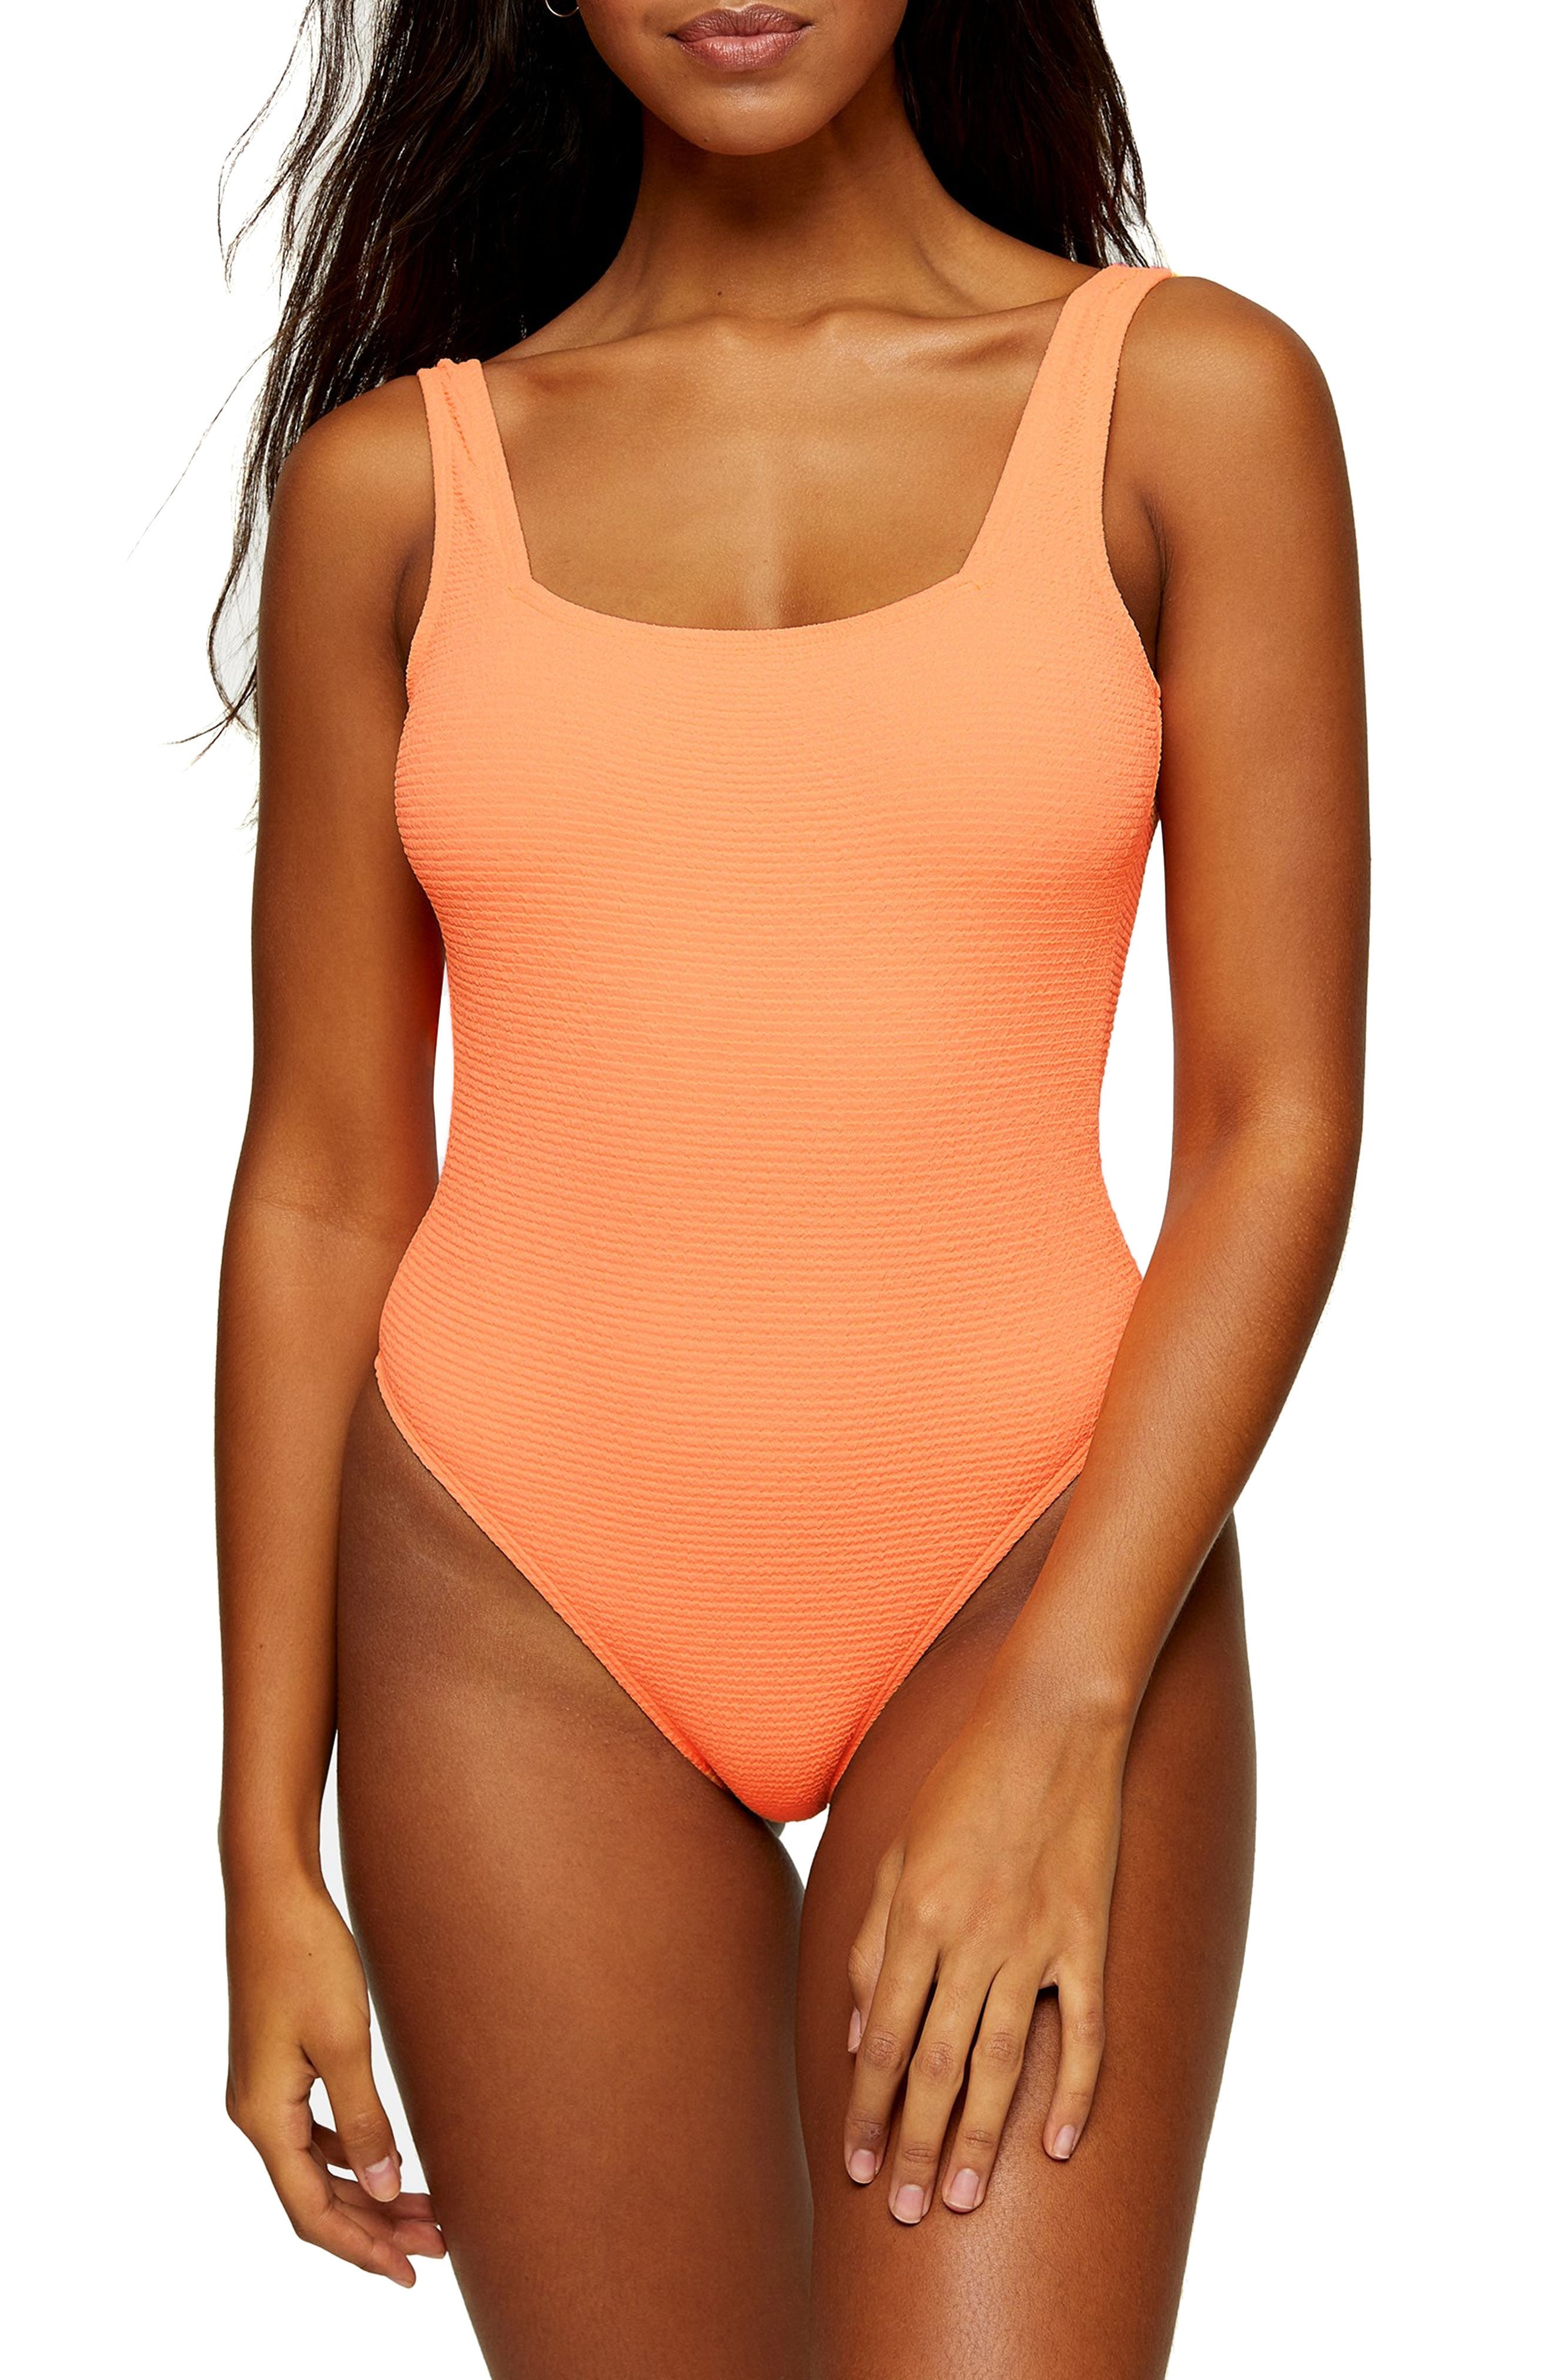 Topshop Women's Topshop One Piece Square Neck Swimsuit, Size 8 US Orange from | Daily Mail